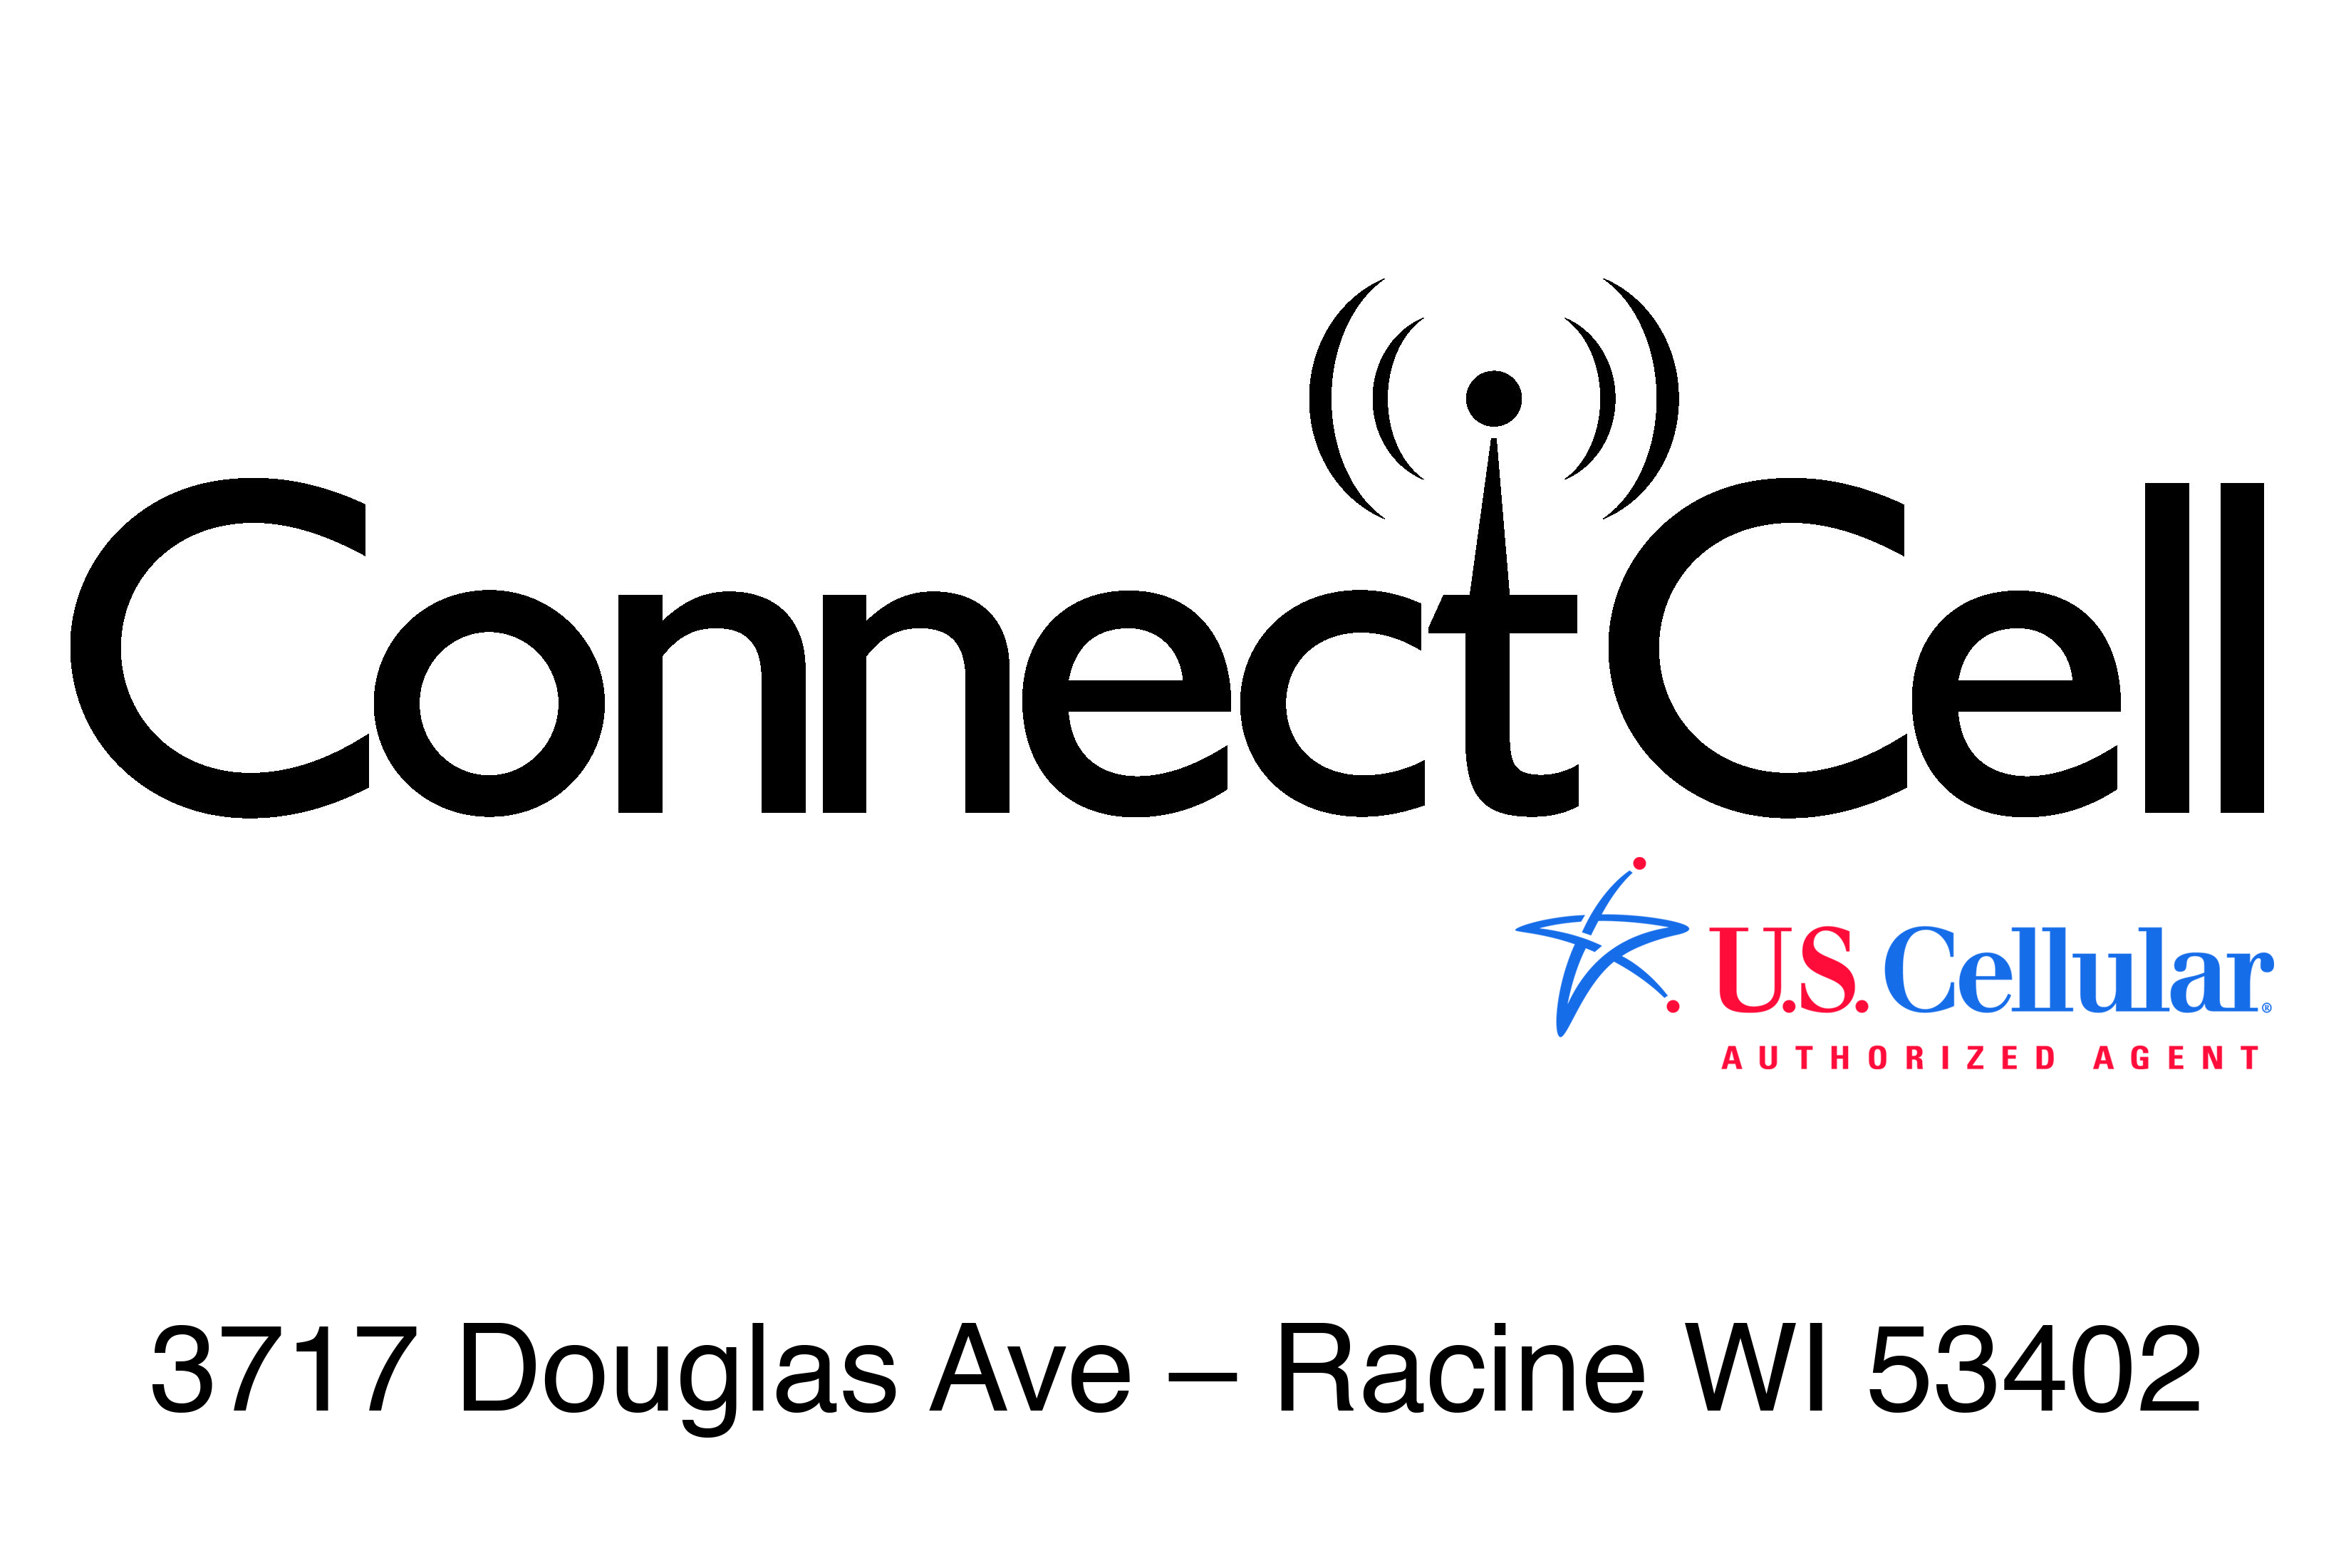 u.11271.Connect Cell logo with Racine Address.jpg